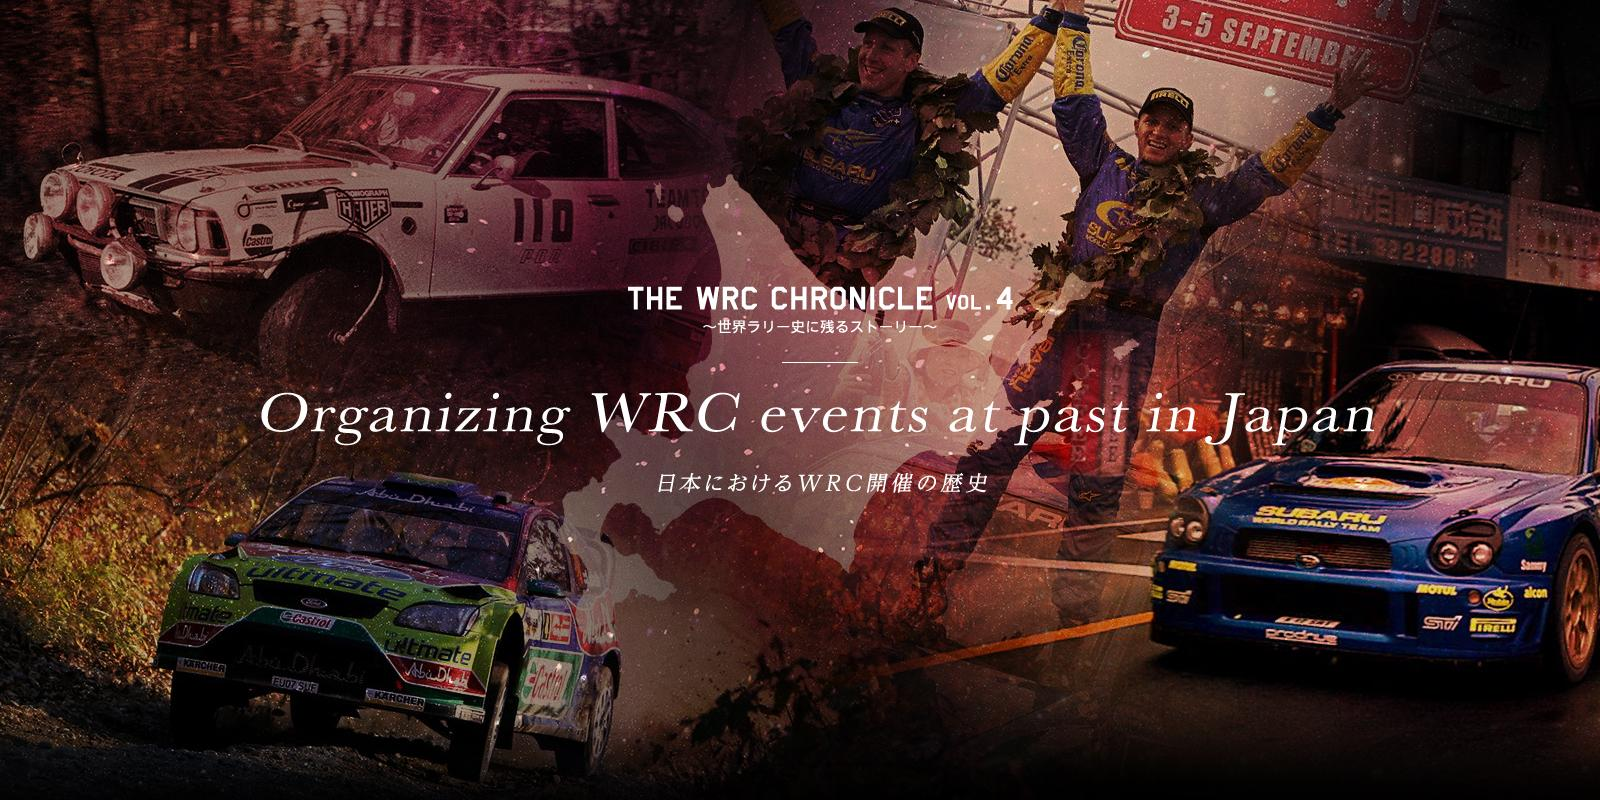 Organizing WRC events at past in Japan 〜日本におけるWRC開催の歴史〜 | The WRC Chronicle vol.4